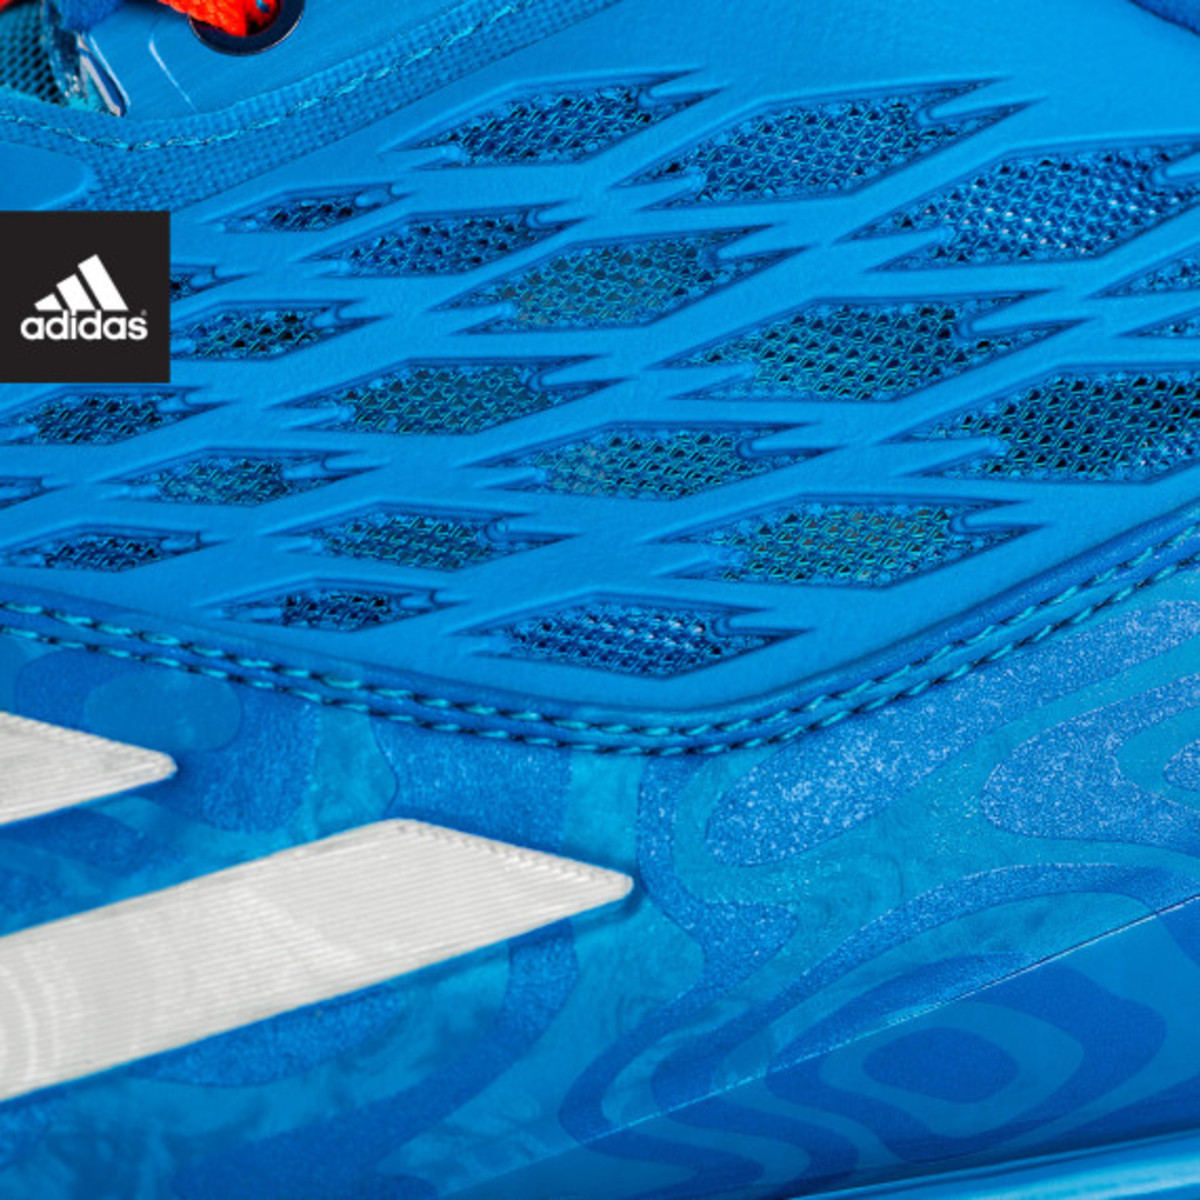 adidas-unveils-mlb-all-star-energy-boost-cleat-07